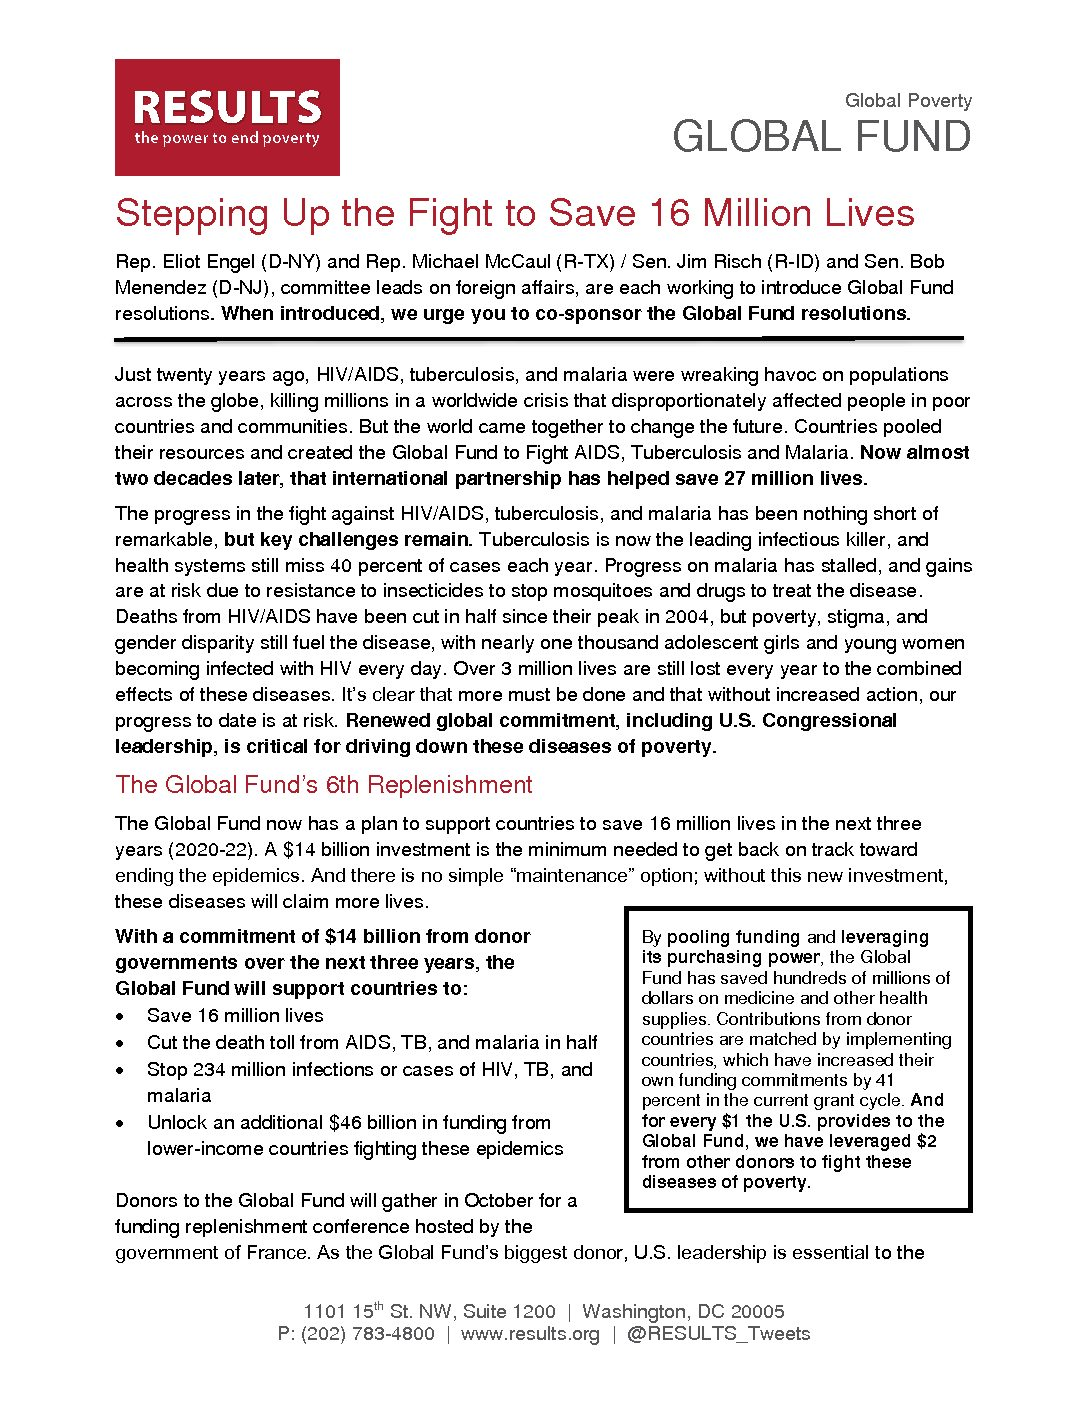 Step Up the Fight: Global Fund to Fight AIDS, TB, and Malaria One Pager (August 2019)